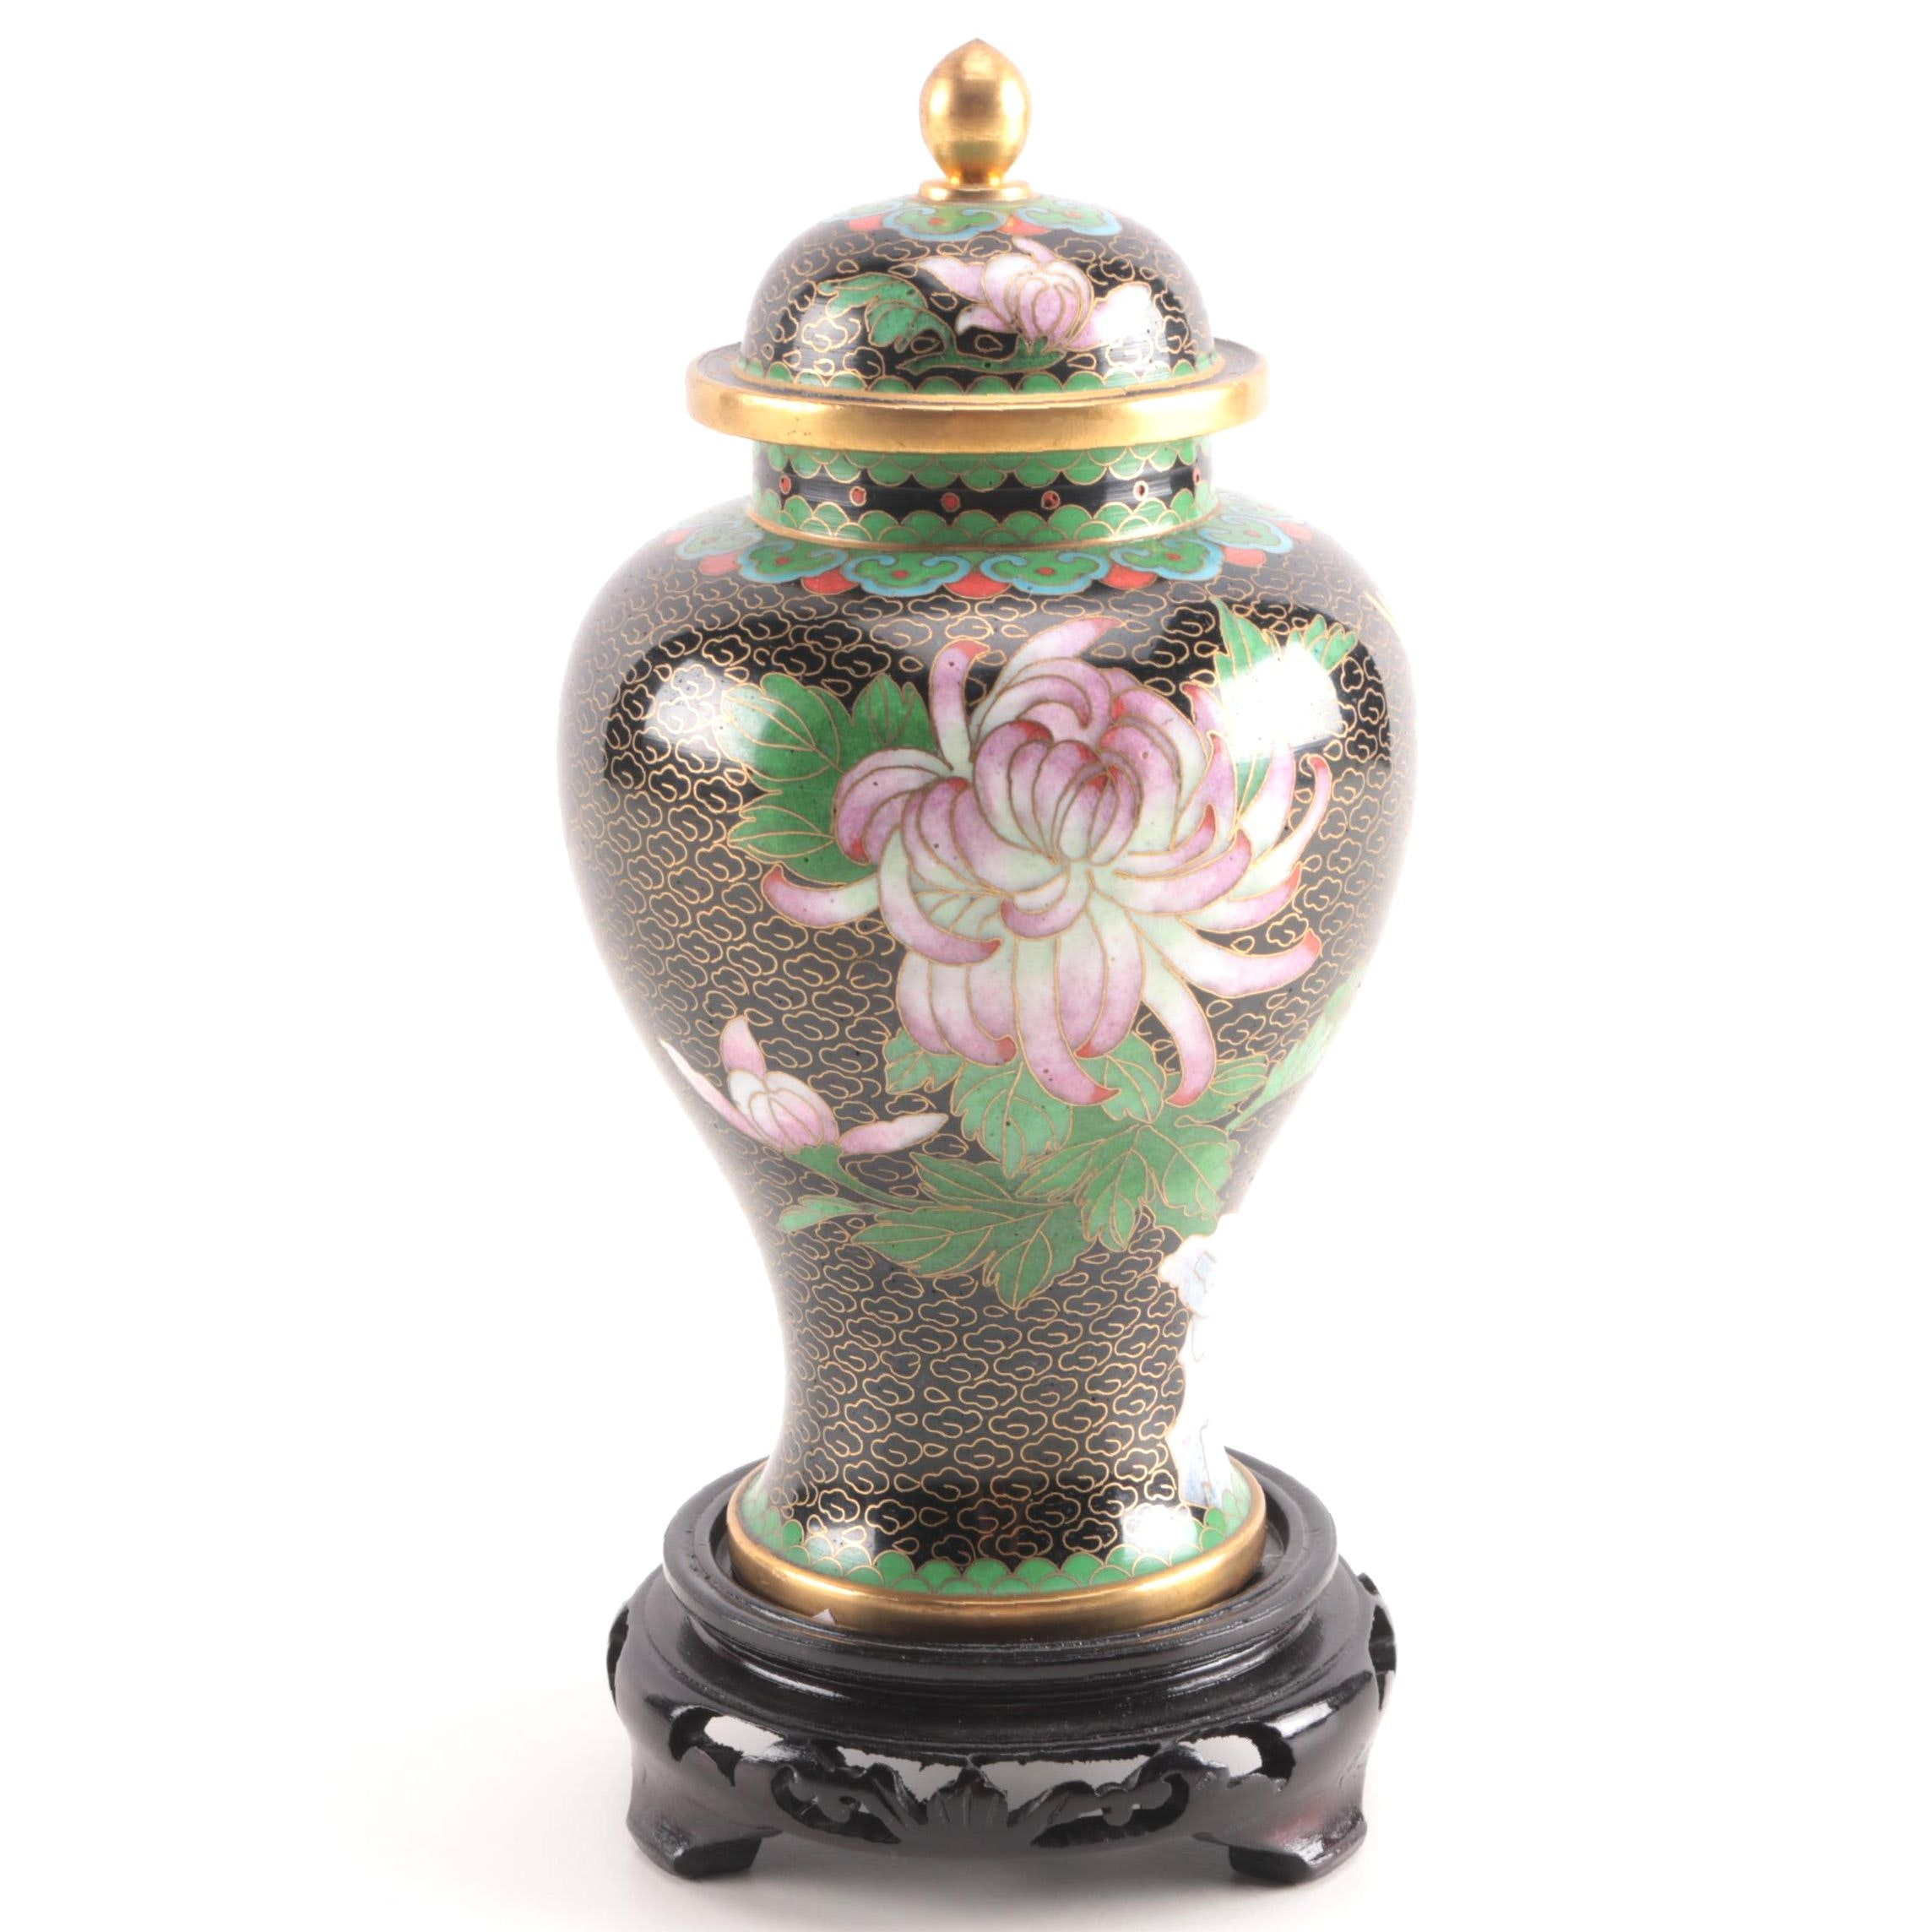 Jingfa Chinese Cloisonné Ginger Jar Vase With Wooden Stand